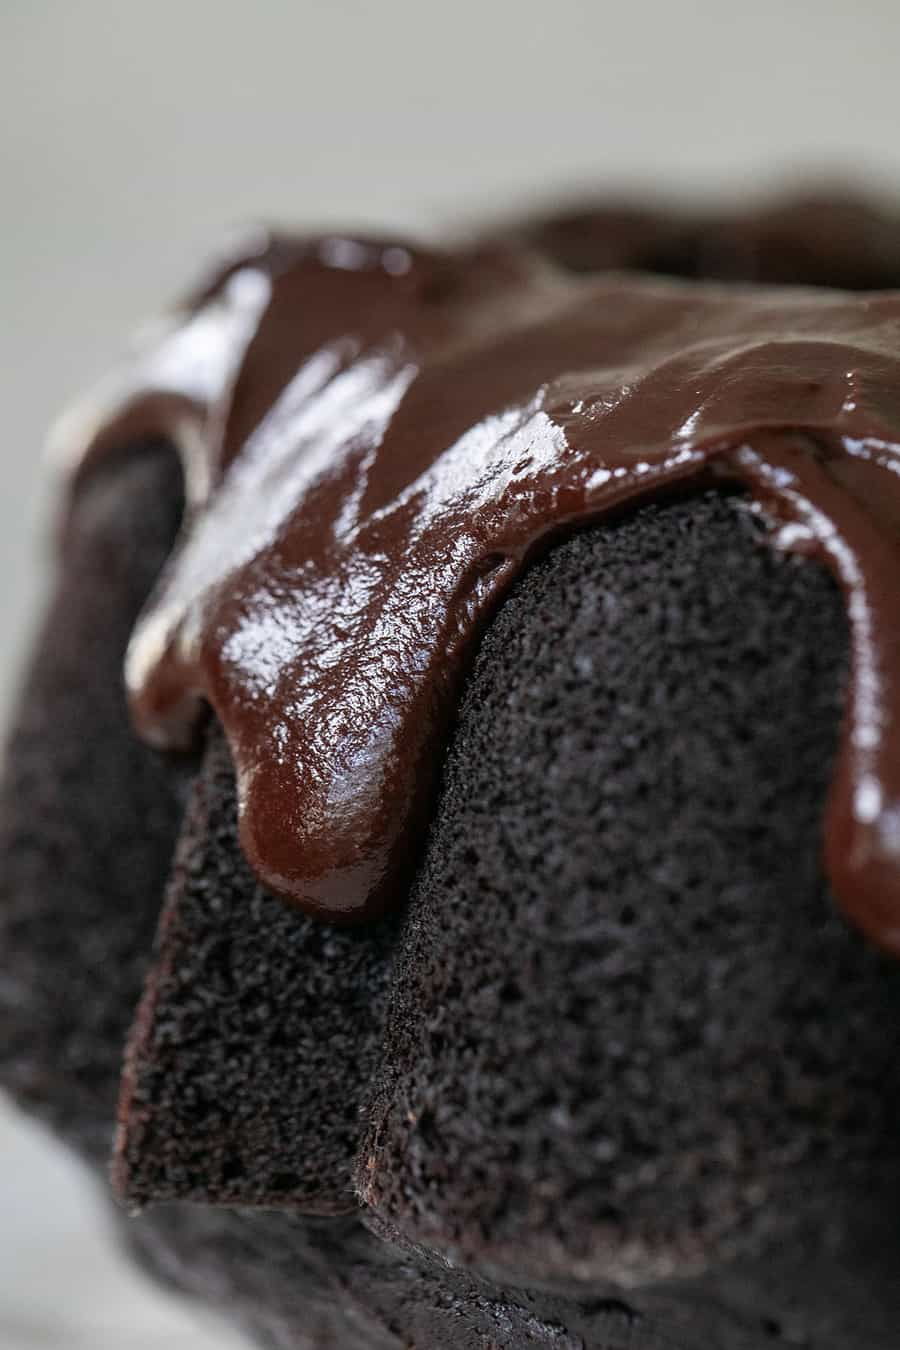 Chocolate bundt cake with dripping chocolate frosting.